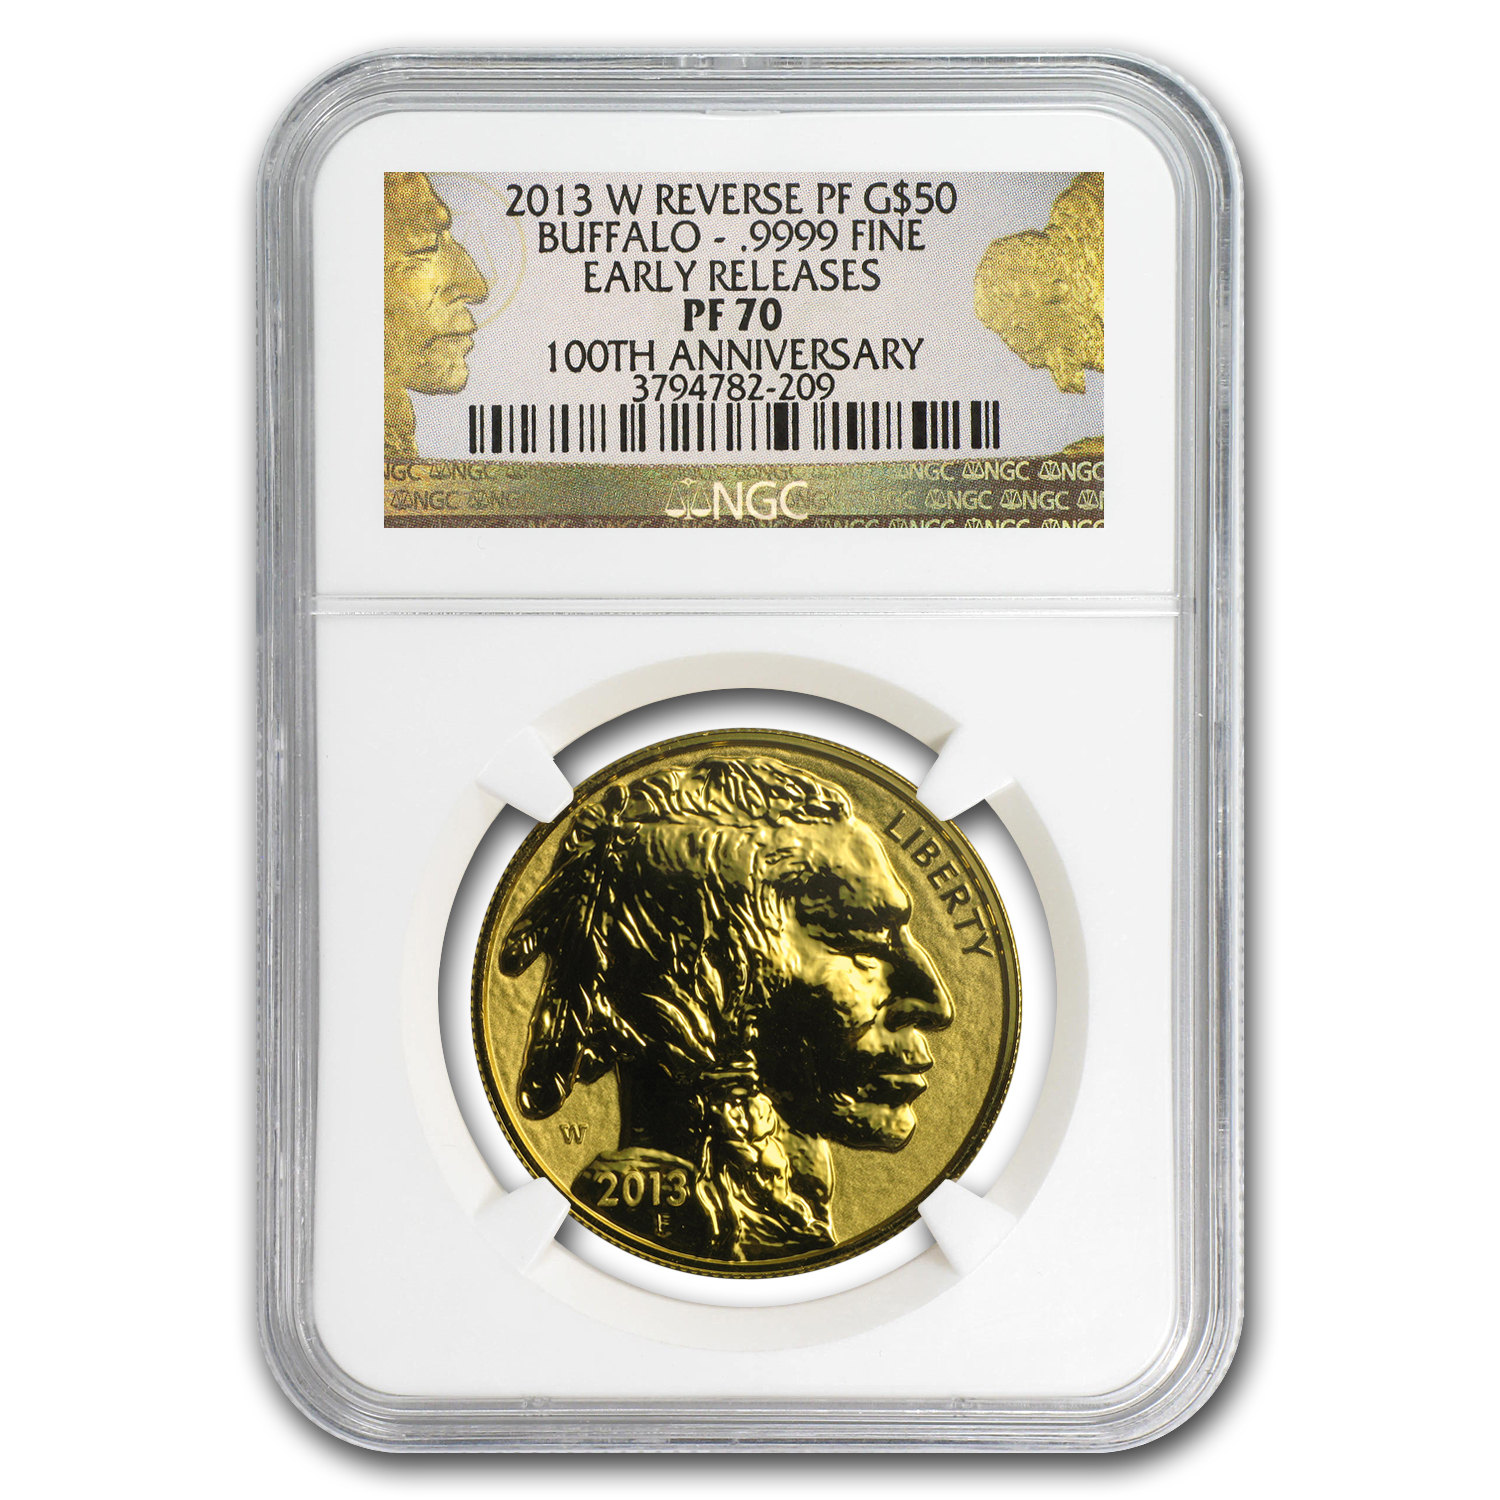 2013-W 1 oz Reverse Proof Gold Buffalo PF-70 NGC Early Releases